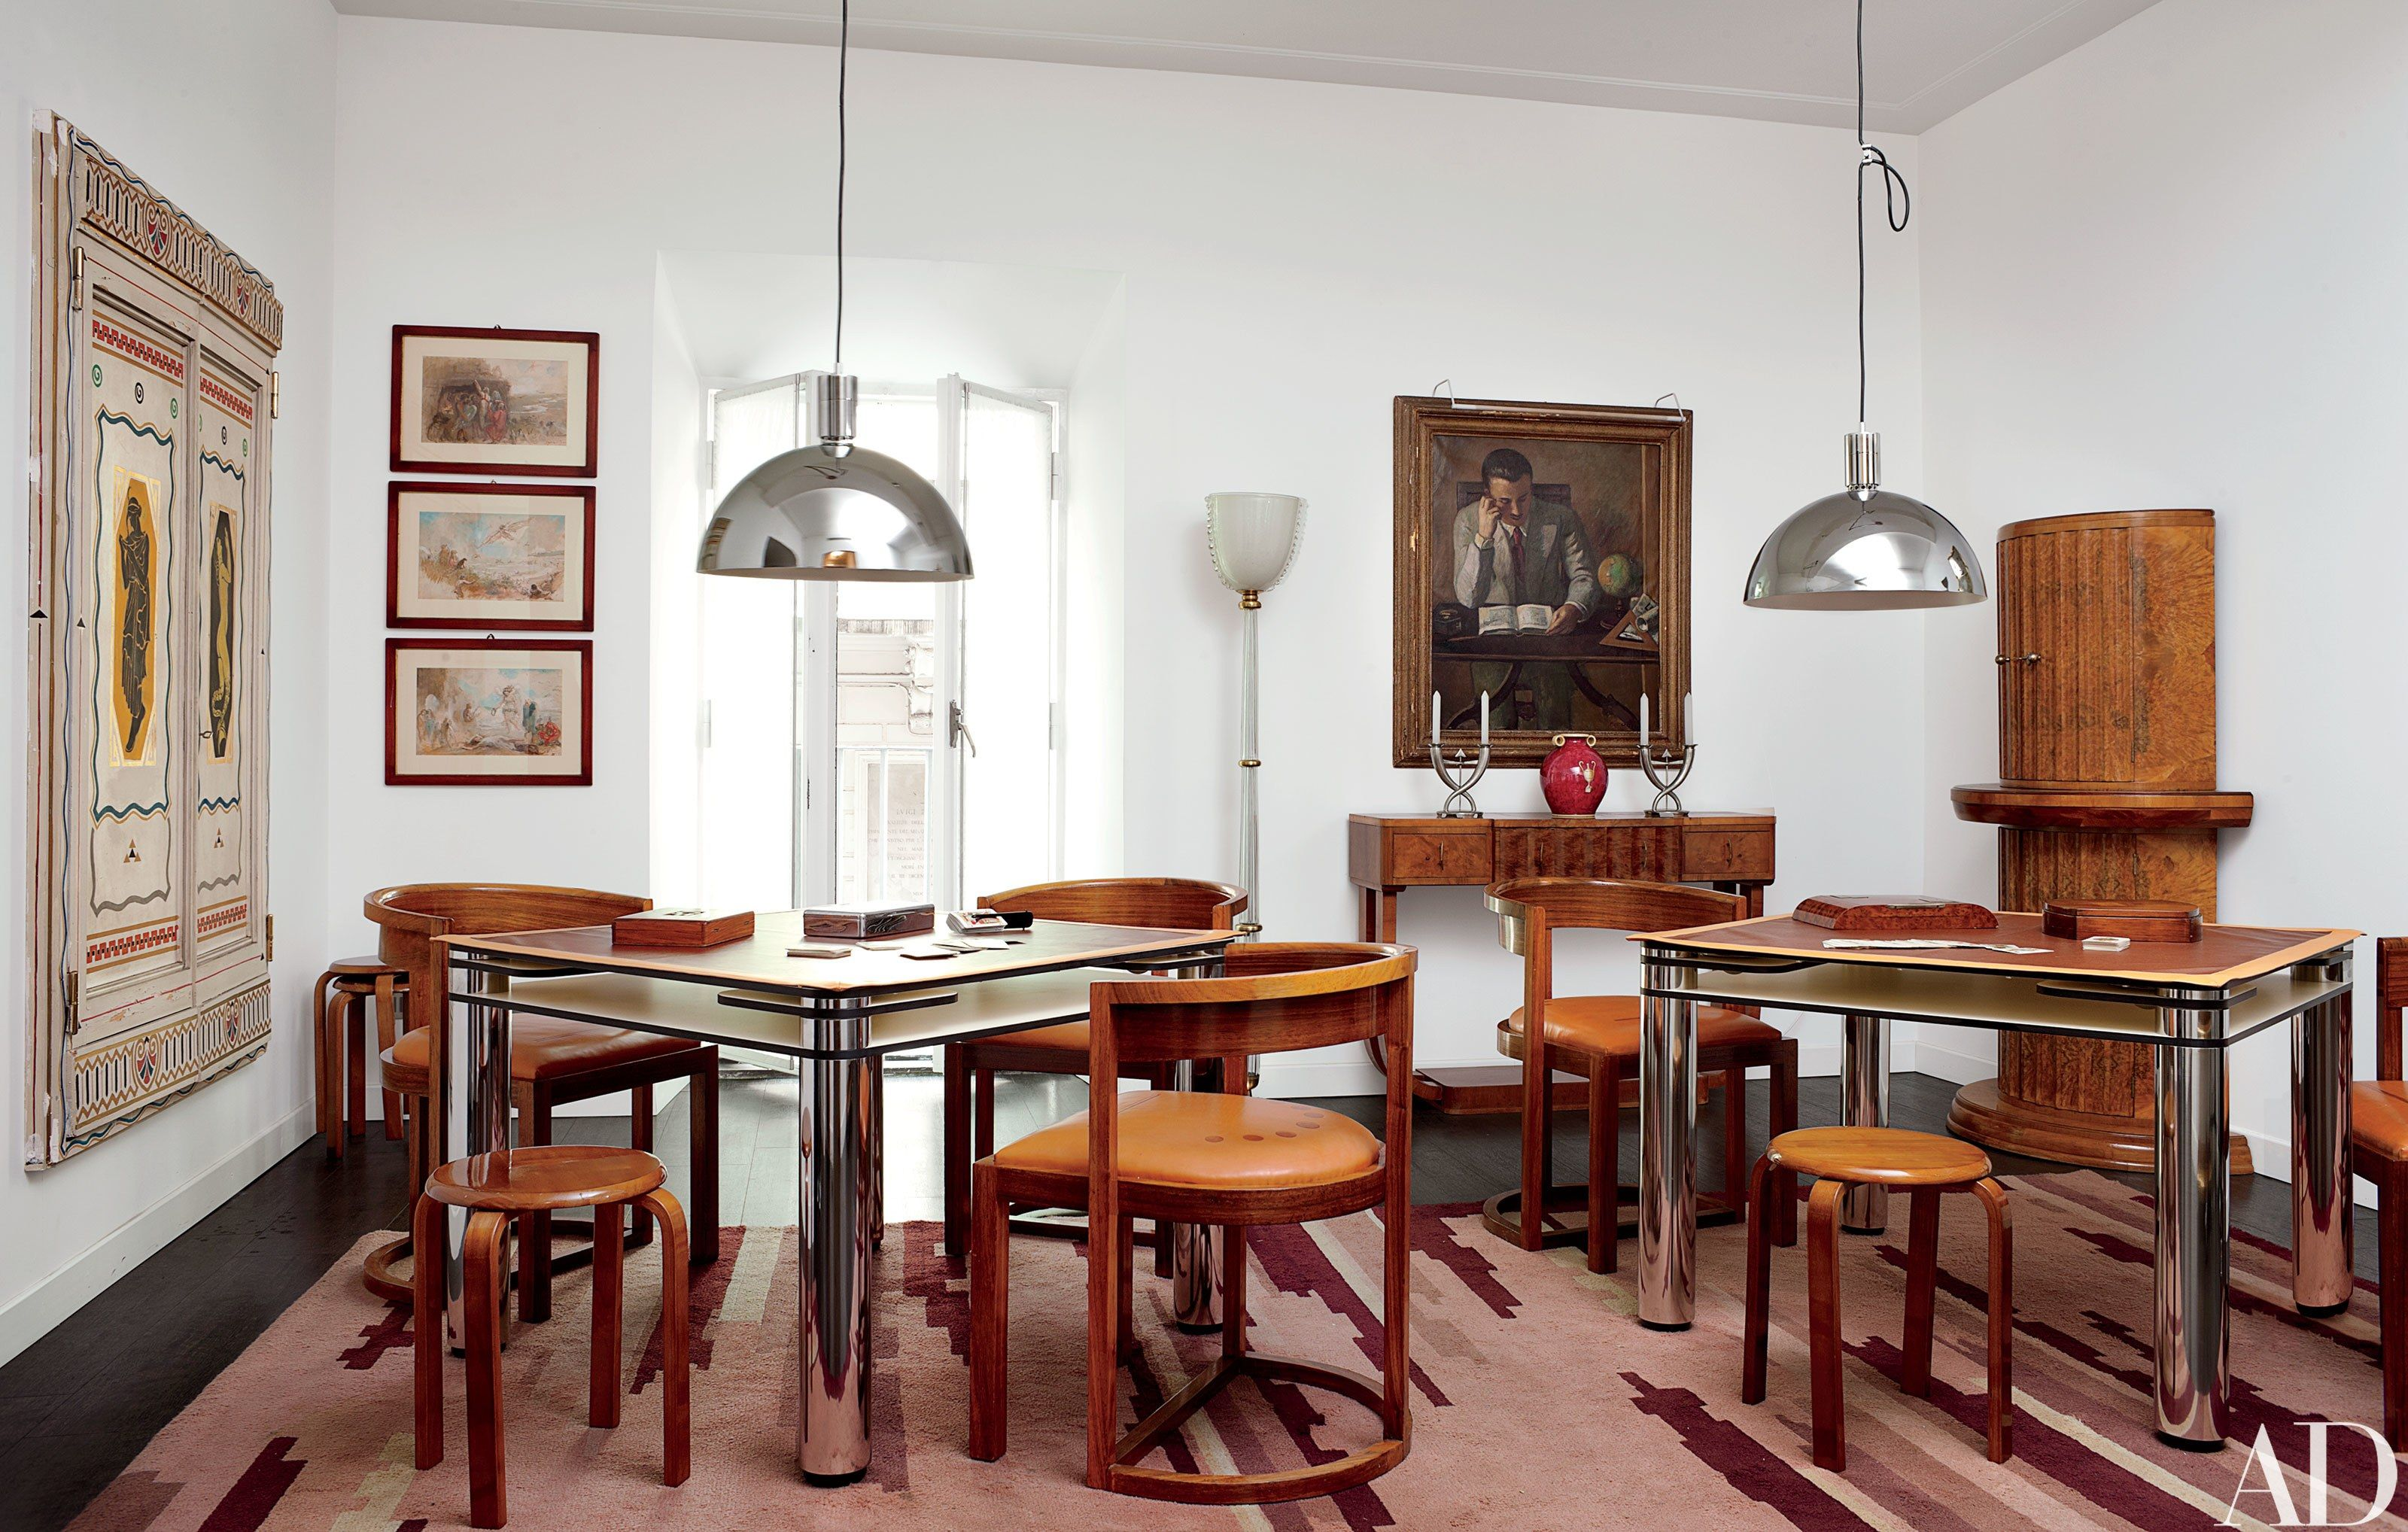 Carla Fendi S Eclectic Apartment In Rome Highlights Her